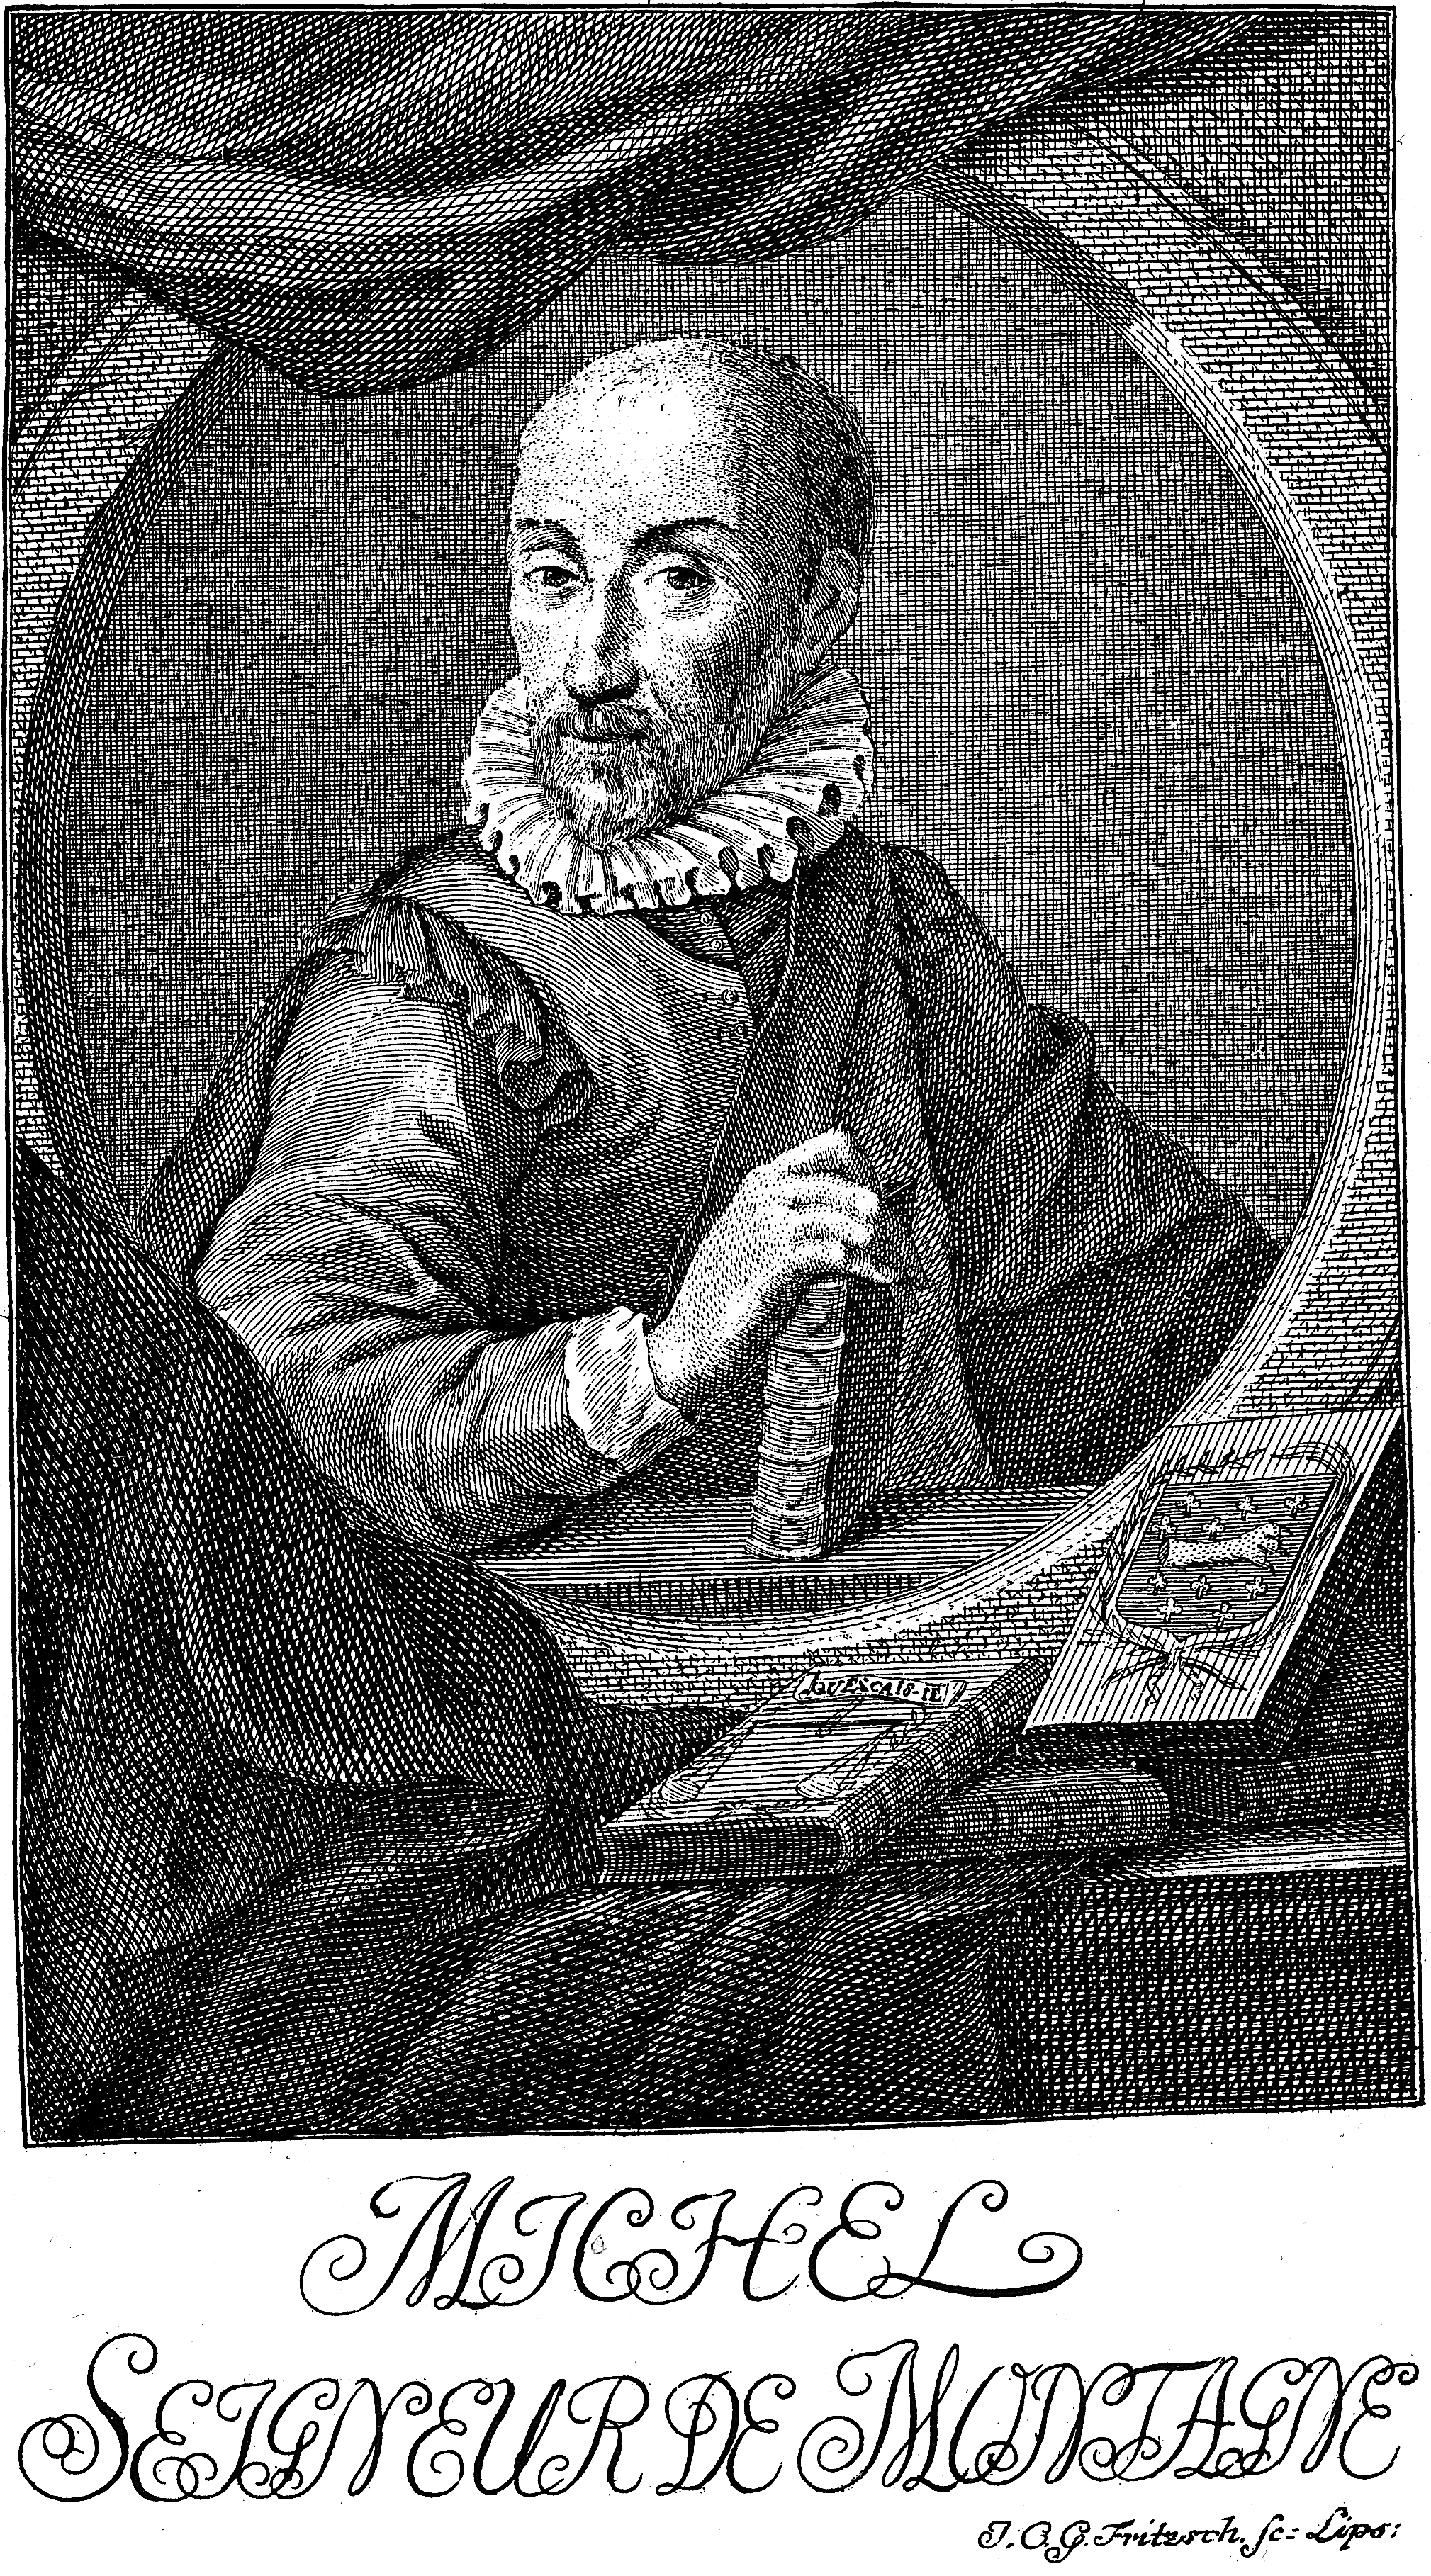 file michel de montaigne portrait from tietz edition png  file michel de montaigne portrait from tietz edition 1753 png